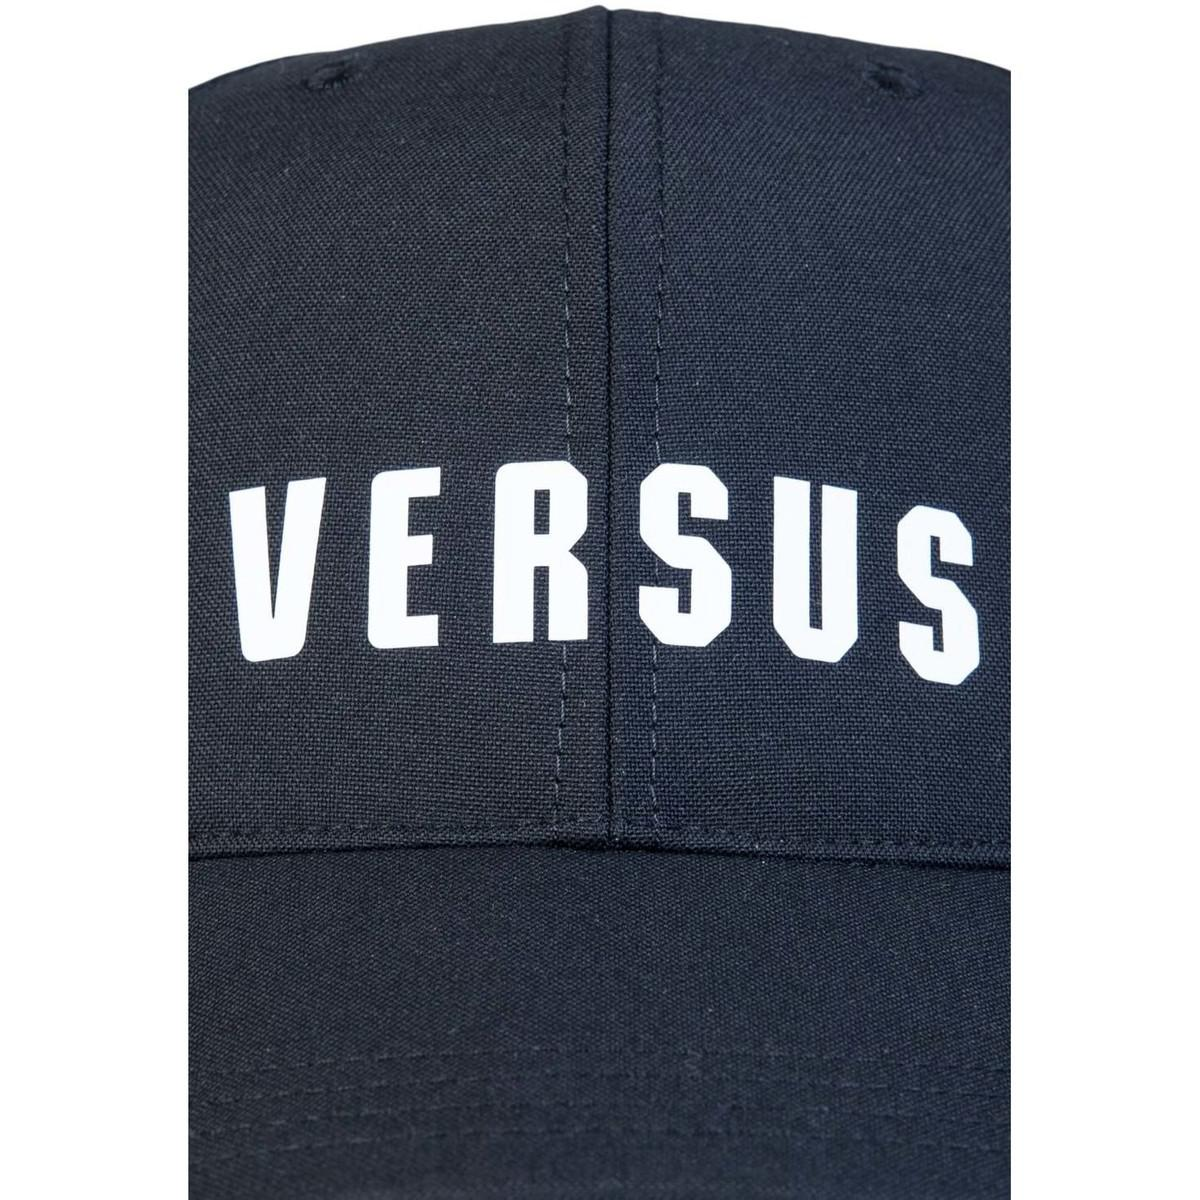 Bt10596 Versace In Men's Versus Baseball Black Buc0019 Cap xhrCtsQd